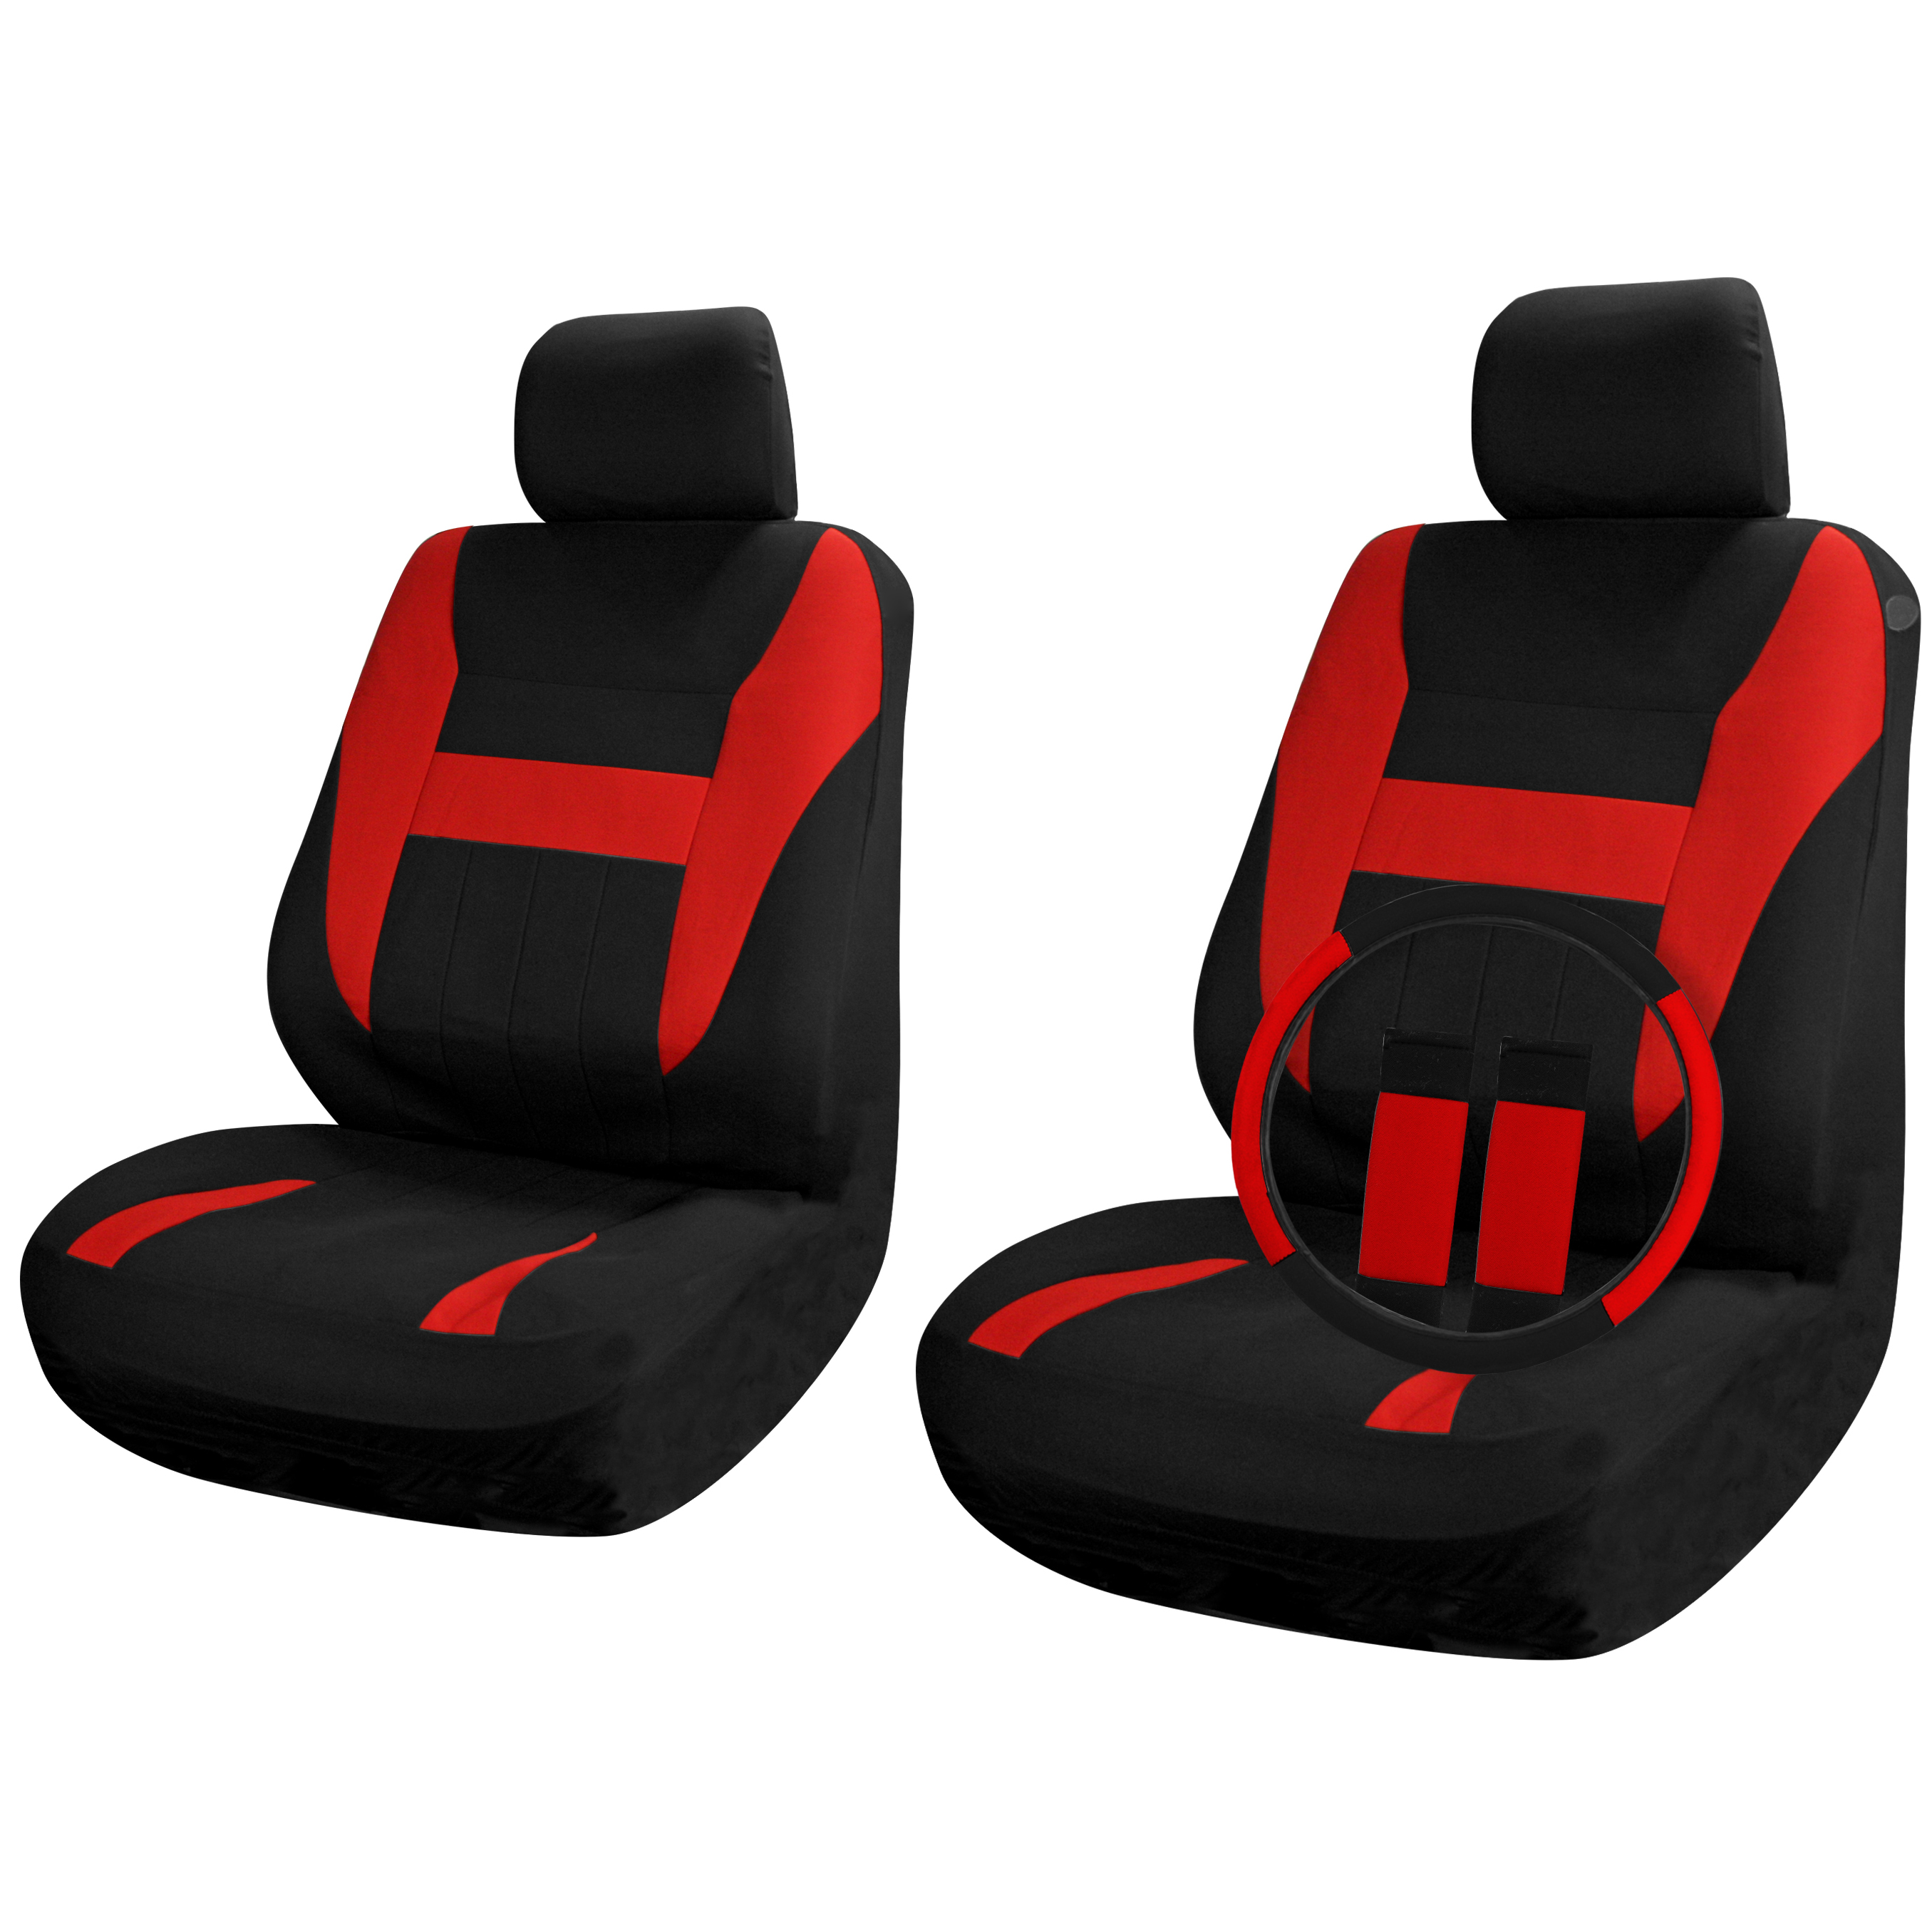 SUV Van Truck Seat Covers Set Bucket Seats Black Red 9pc